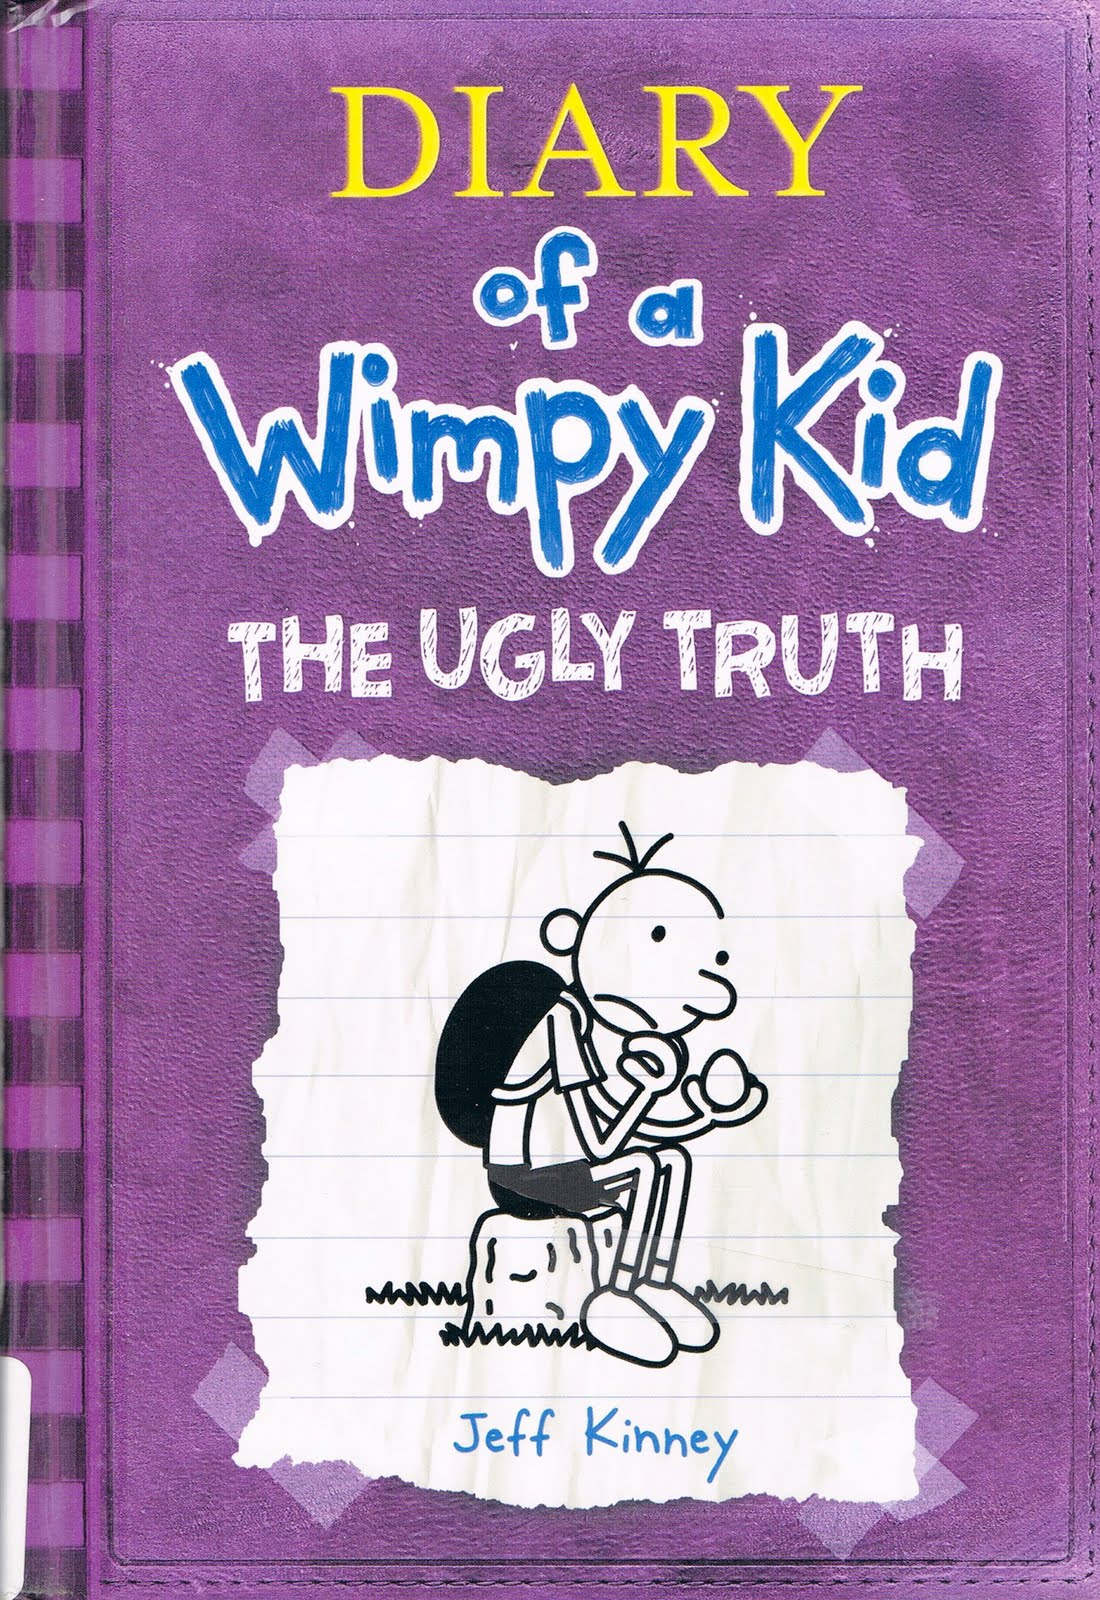 character of chulkaturin in diary of Gregory heffley gregory greg heffley is the main character of diary of a wimpy kid book series, who is believed to be loosely based on jeff kinney.